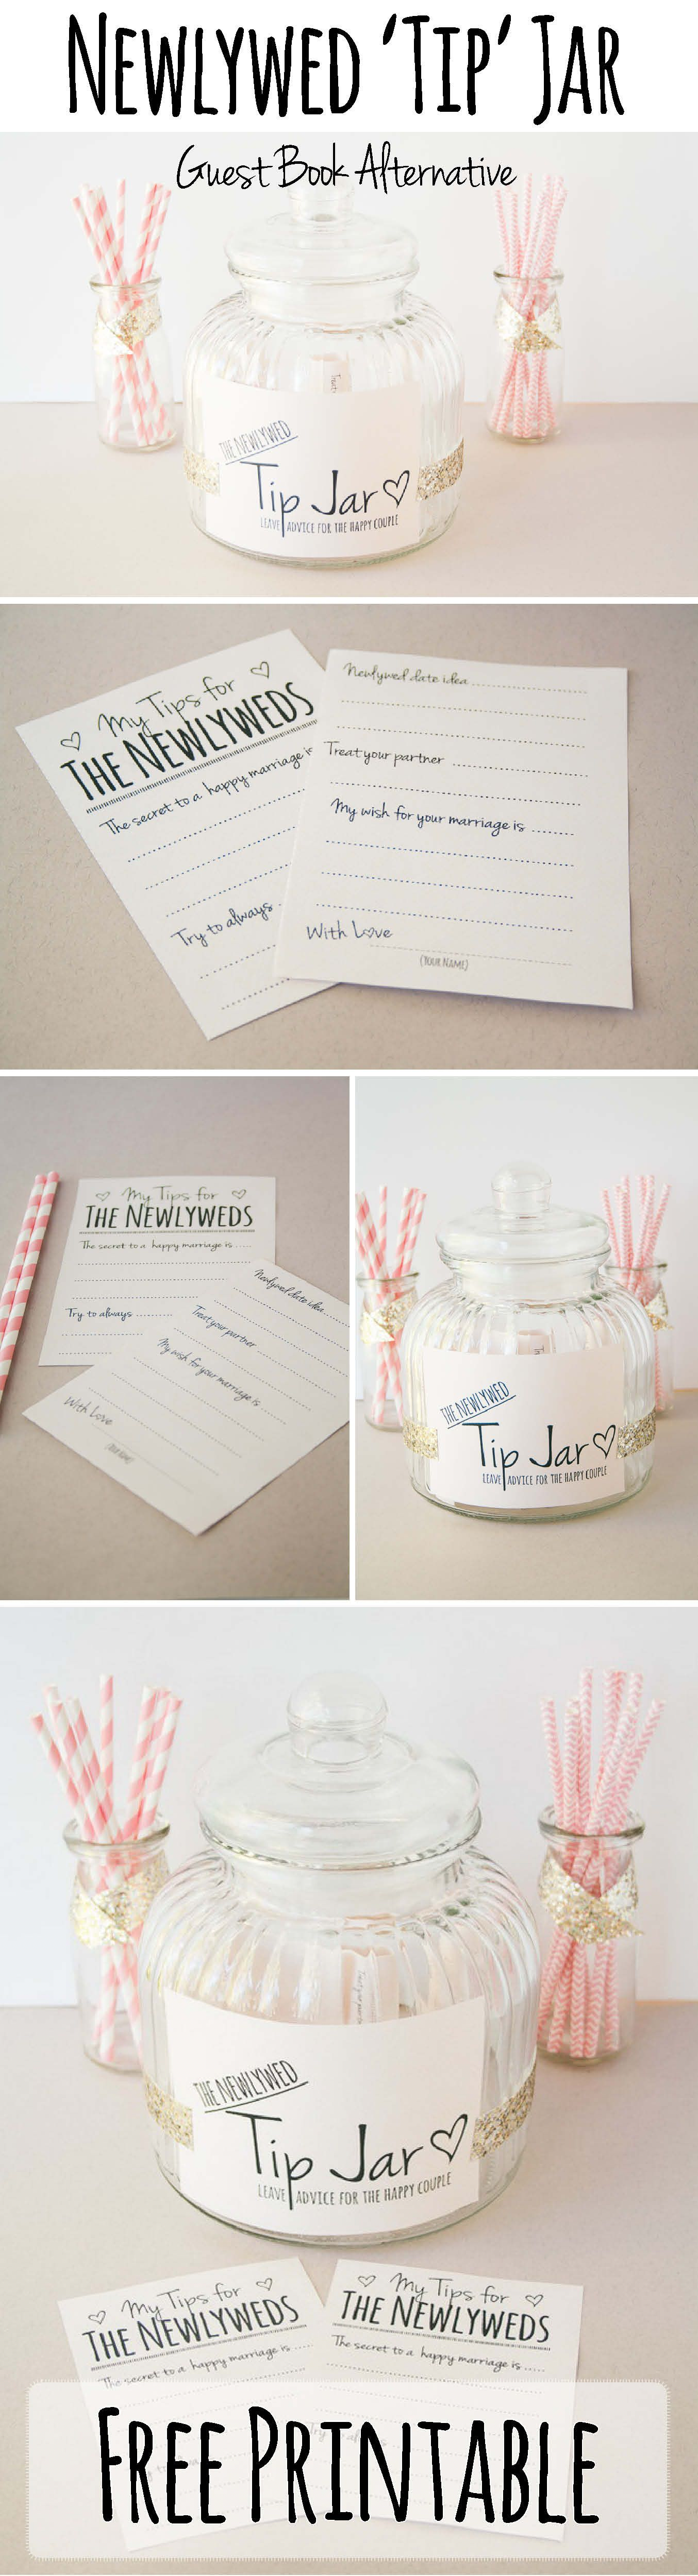 photo regarding Printable Tip Jar Signs identify Do-it-yourself Newlywed Suggestion Jar Printable Visitor E book Solution